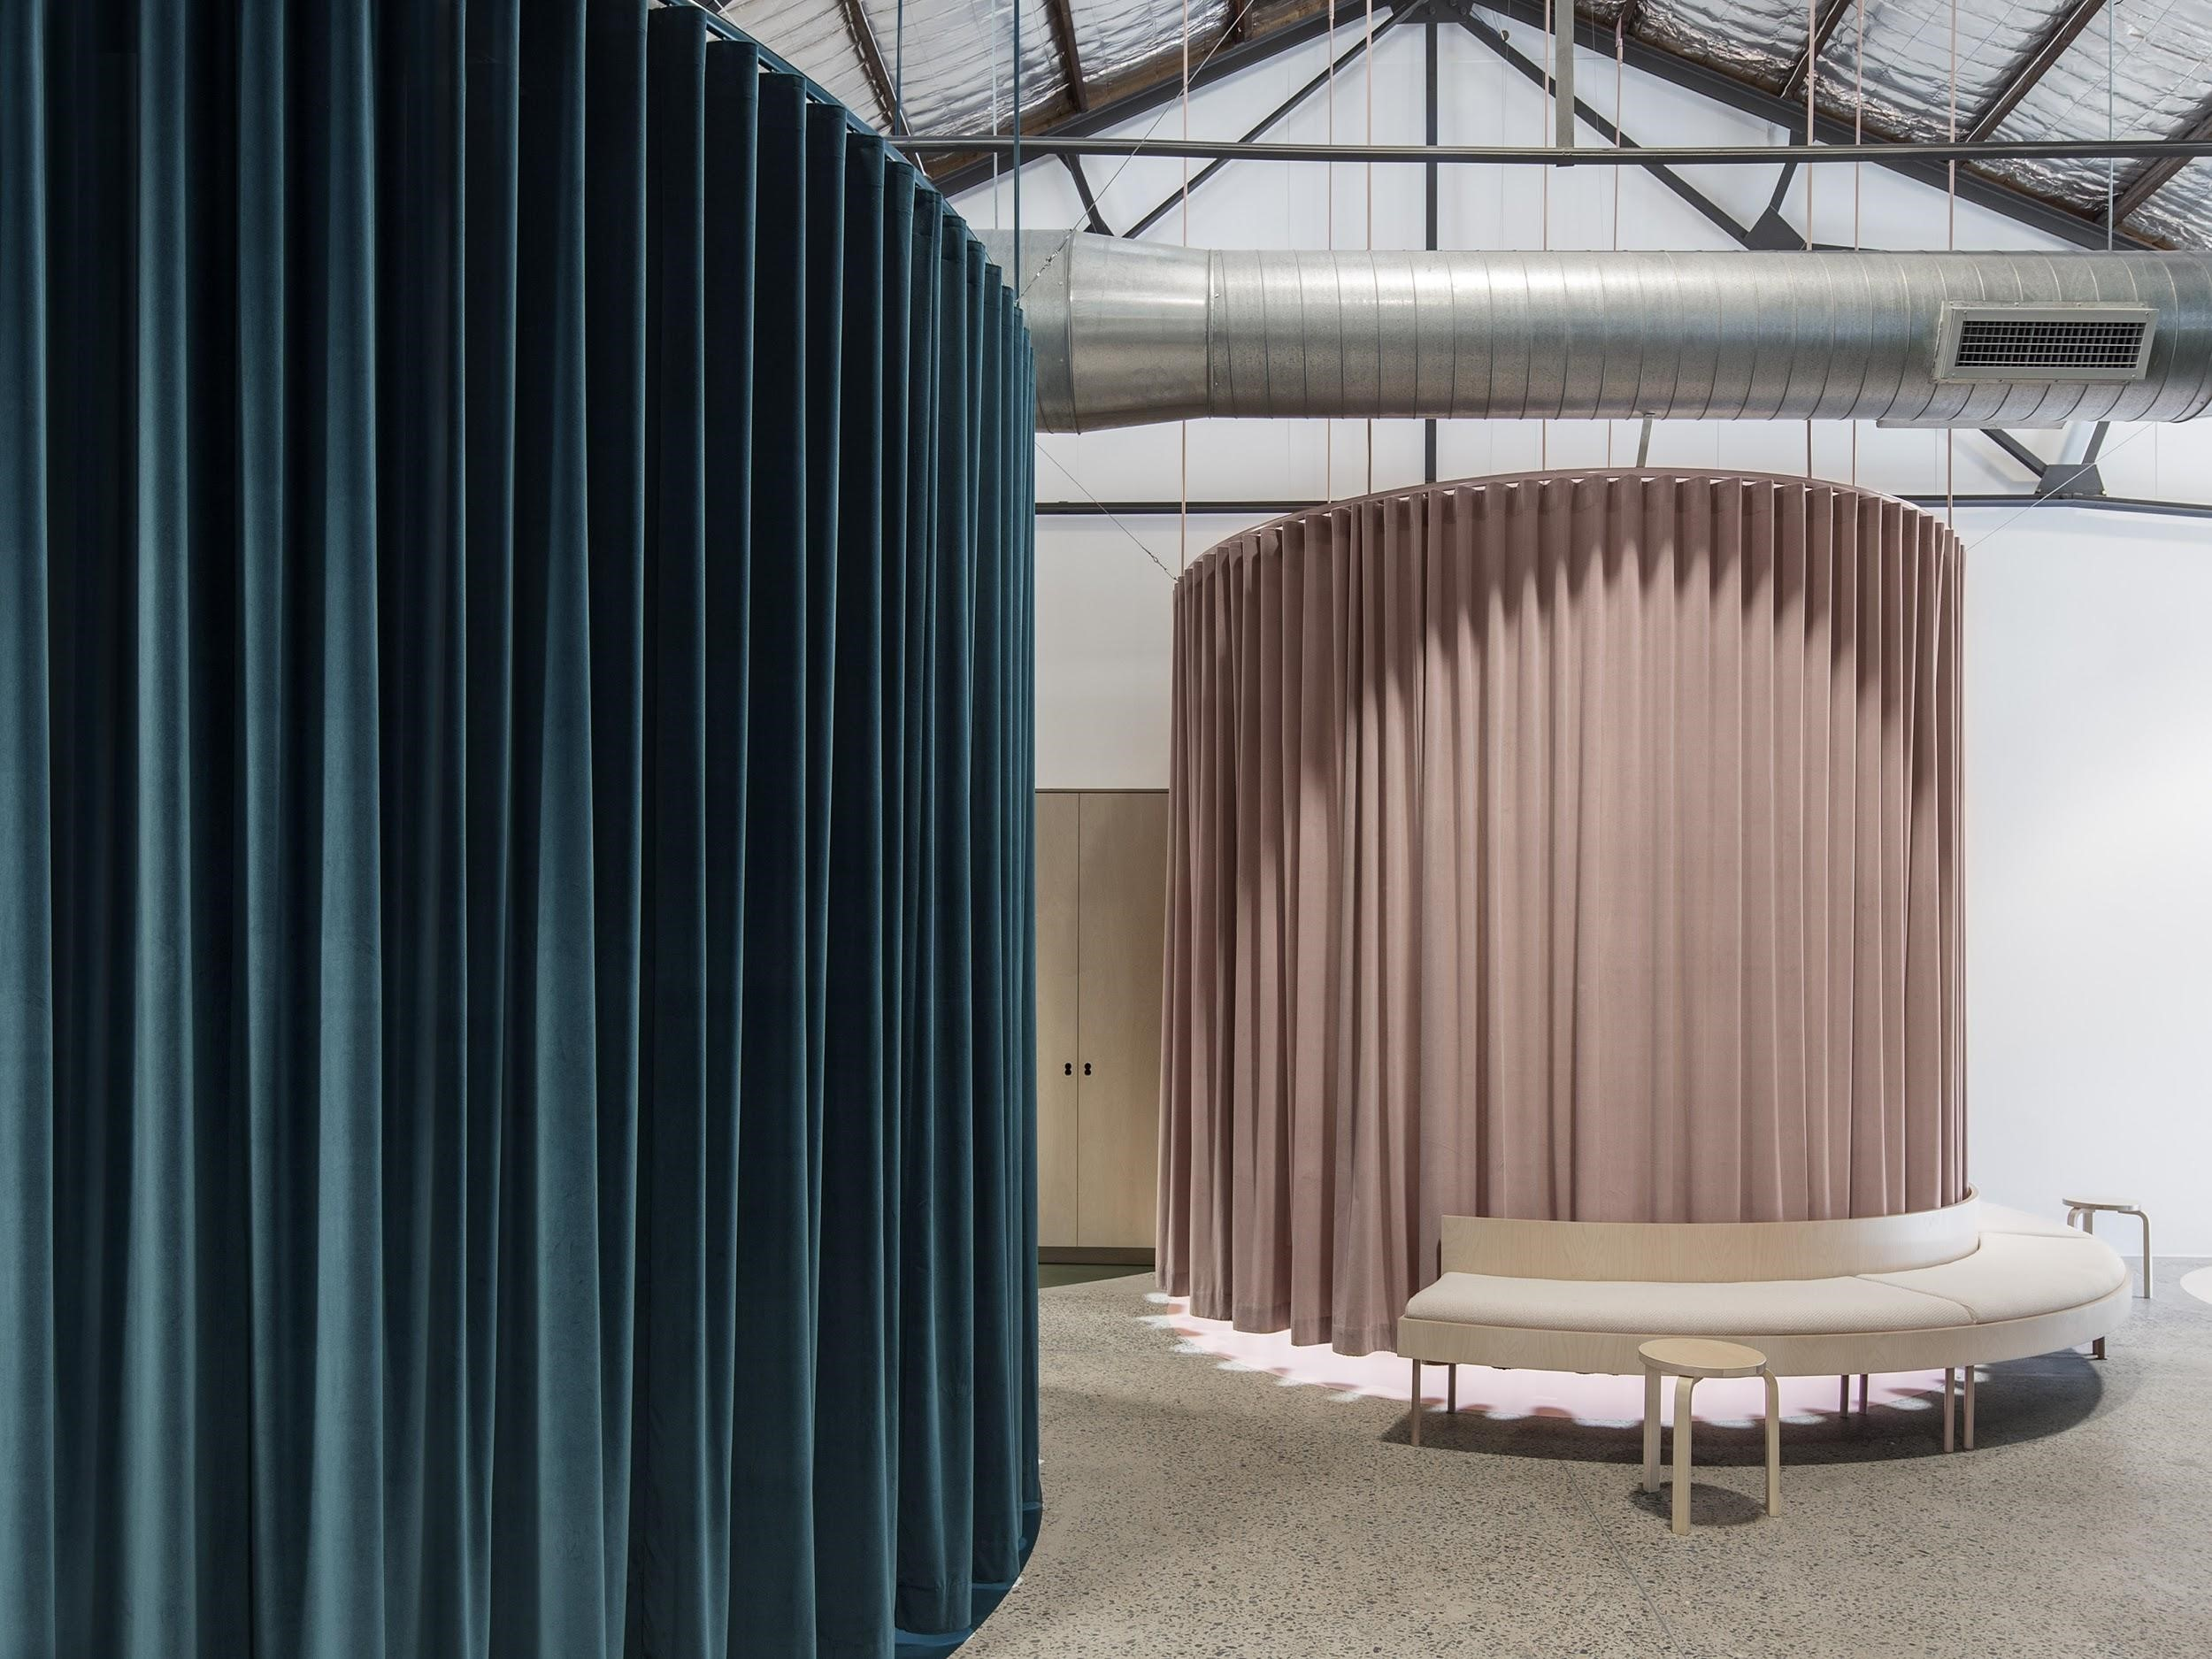 Where Velvet S Fold Curtains On Circular Tracks Alternately Conceal And Reveal To Create A Workspace Unlike Any Other.